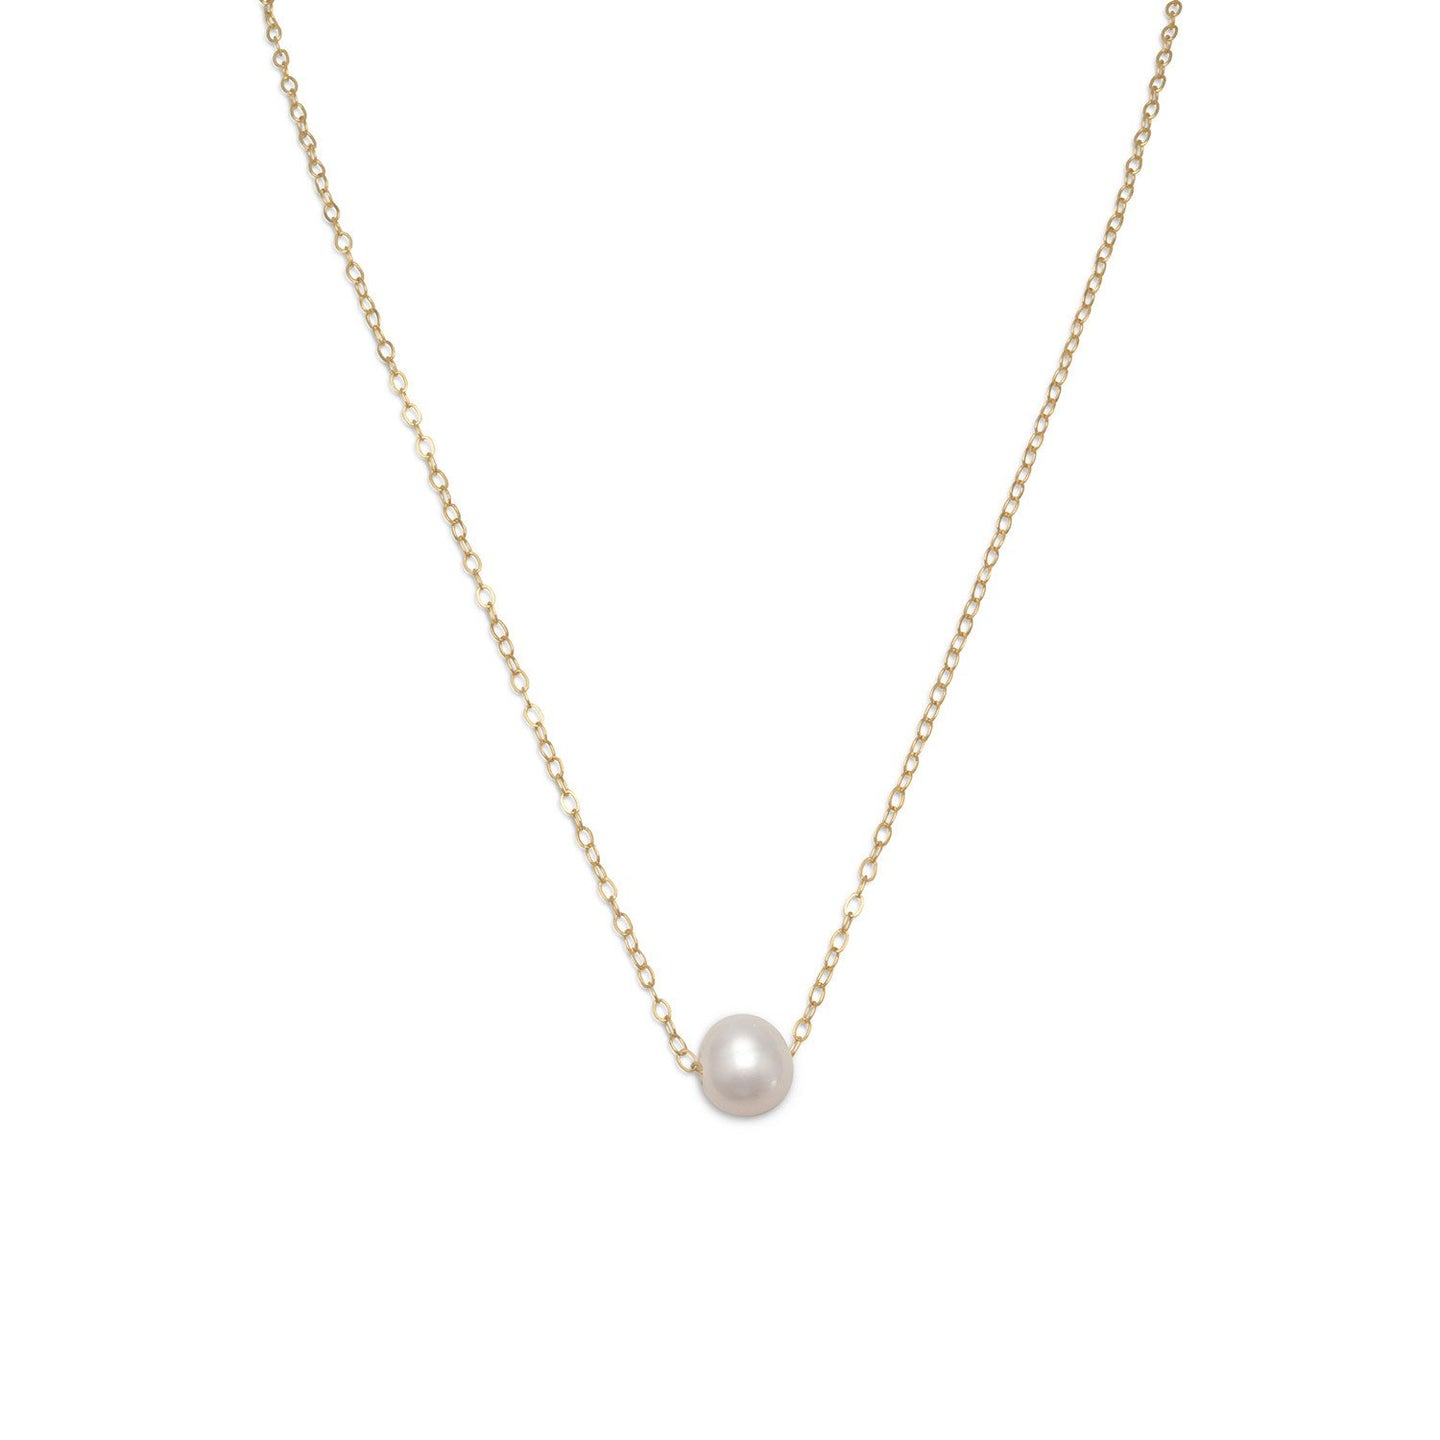 Gold Filled Floating Cultured Freshwater Pearl Necklace - the-southern-magnolia-too